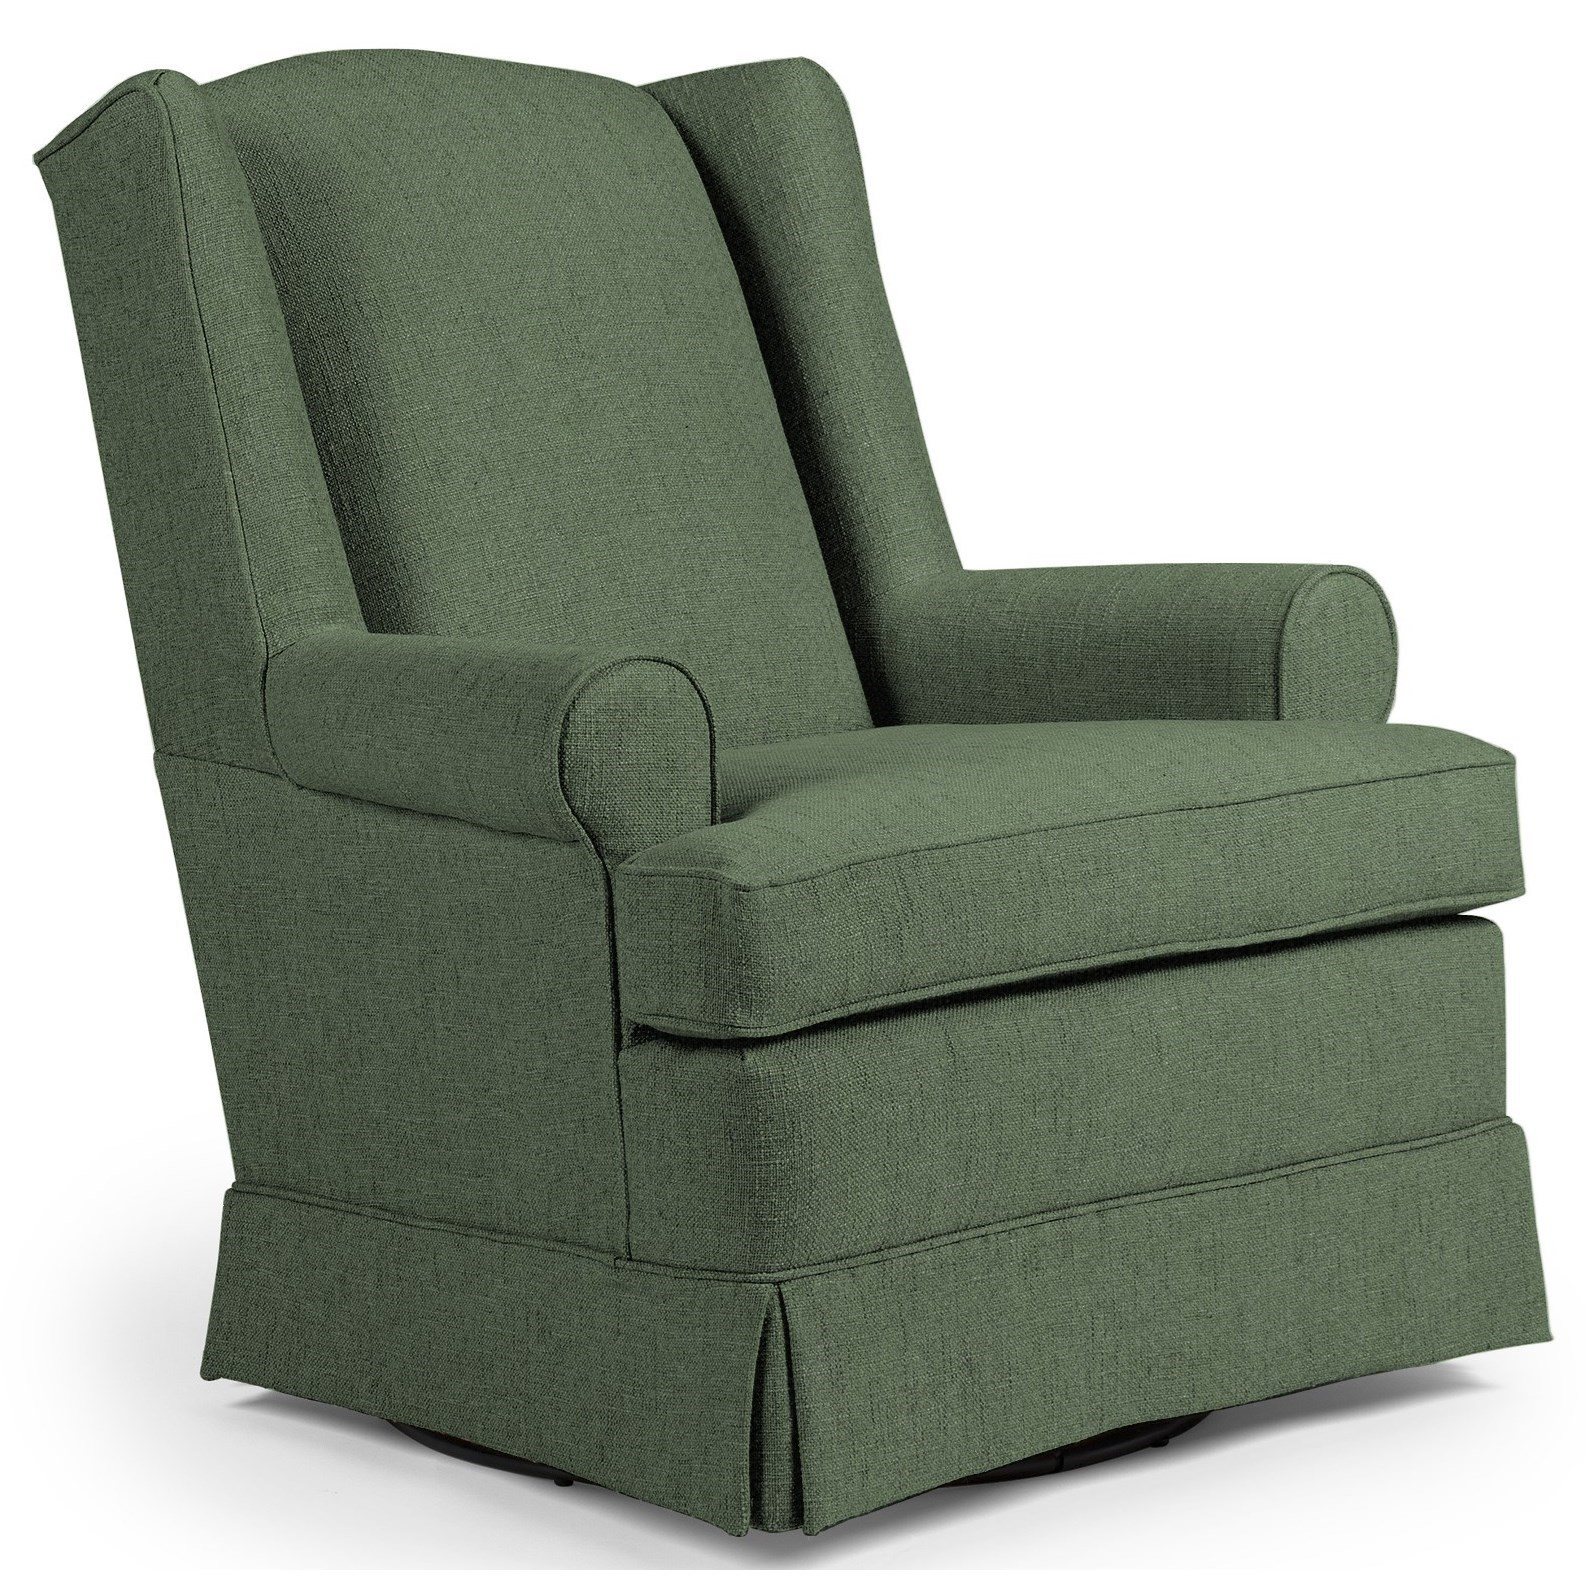 Roni Swivel Glider Chair